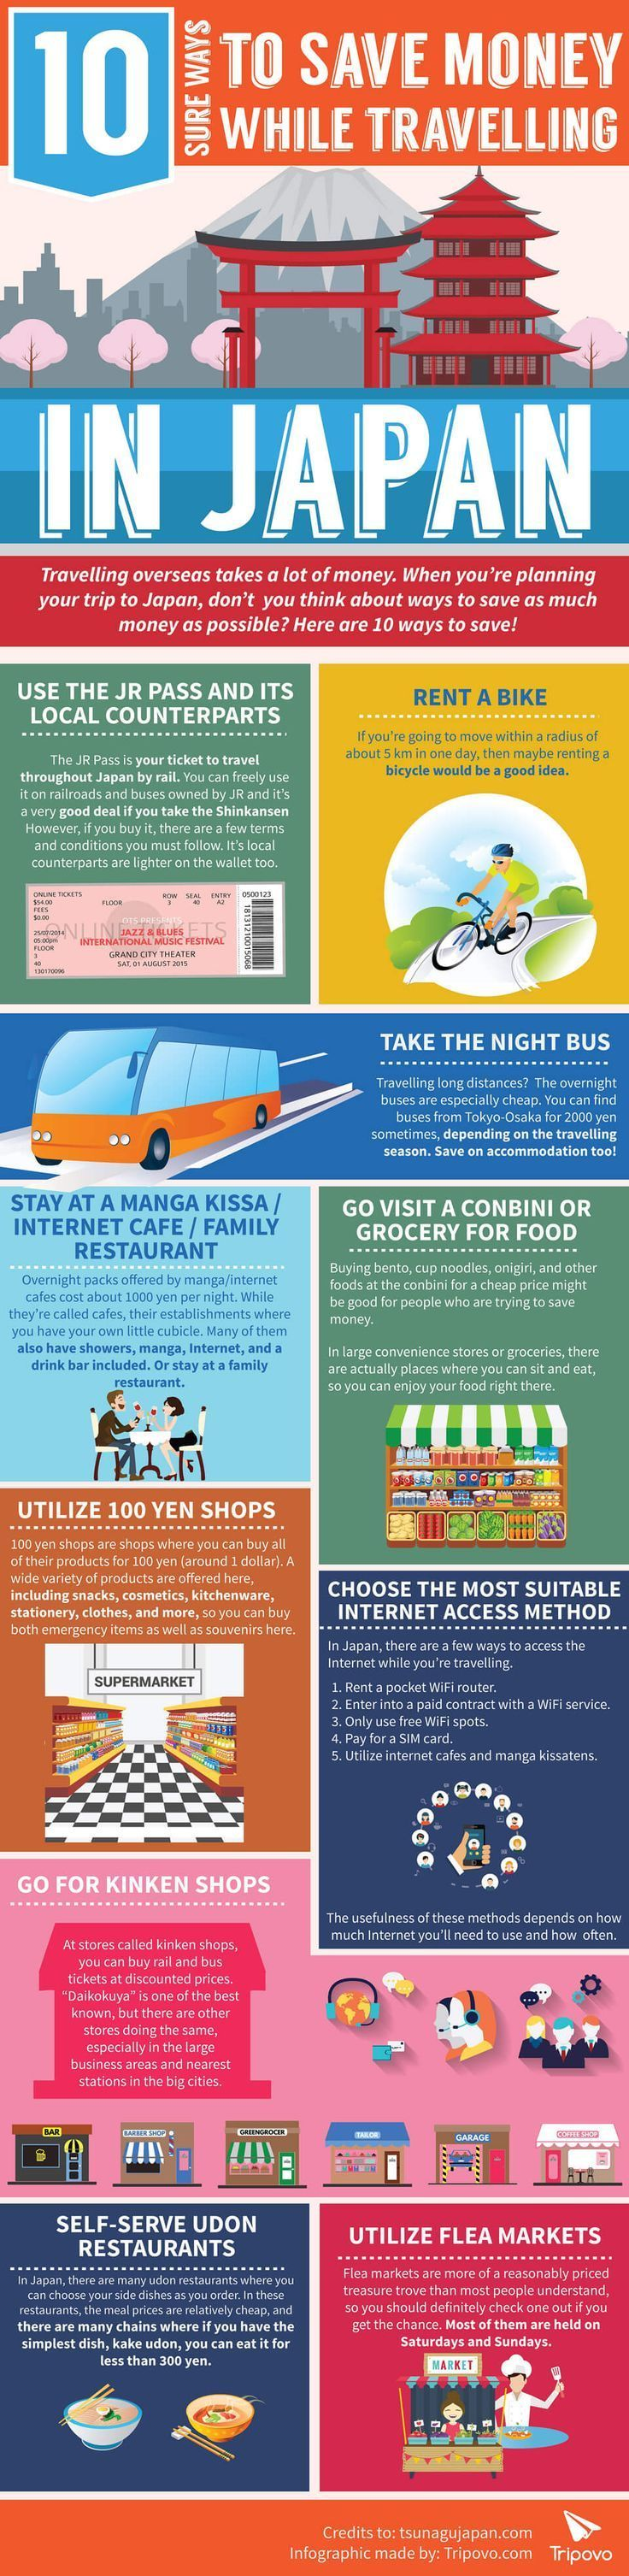 10 Smart Ways To Save #Money In #Japan - Do you fancy an infographic? There are a lot of them online, but if you want your own please visit www.linfografico.... Online girano molte infografiche, se ne vuoi realizzare una tutta tua visita ht